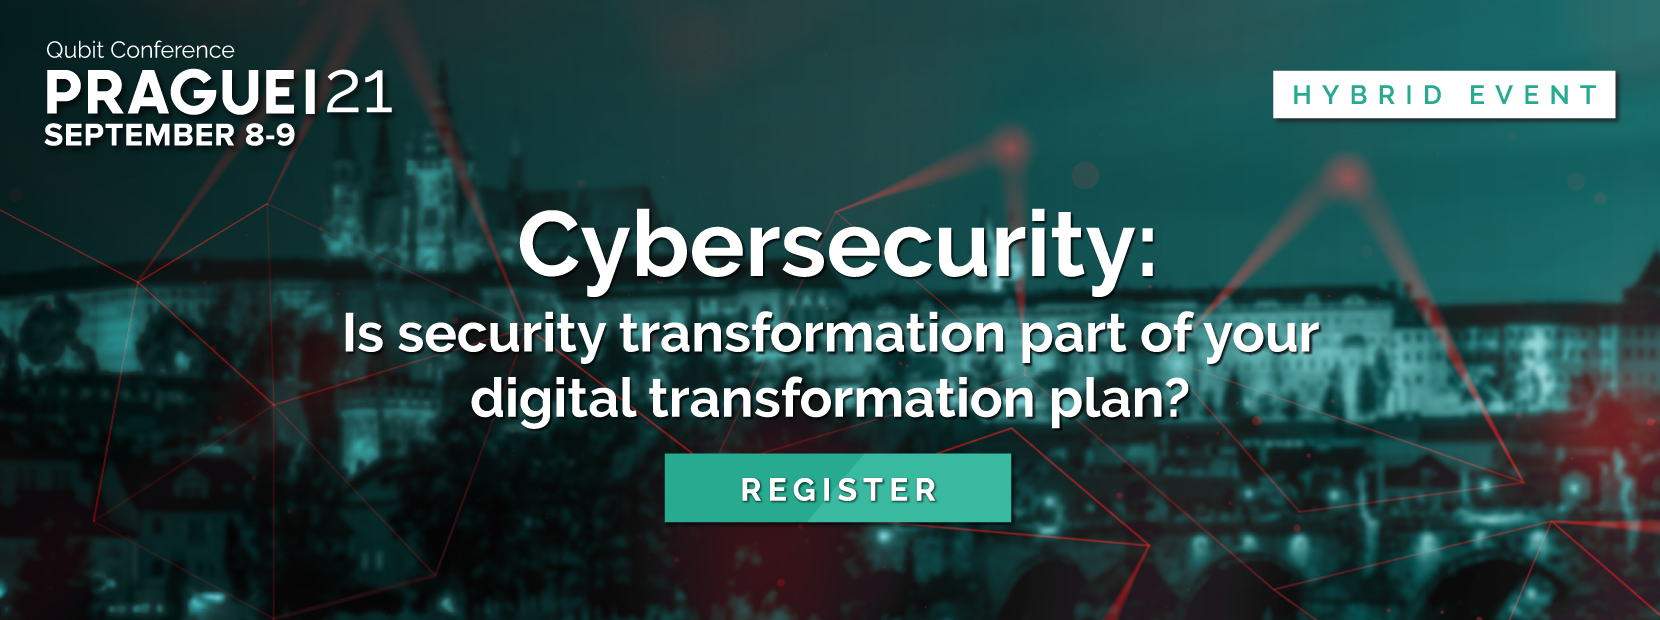 QUBIT Conference – The Cybersecurity Conference in CEE region